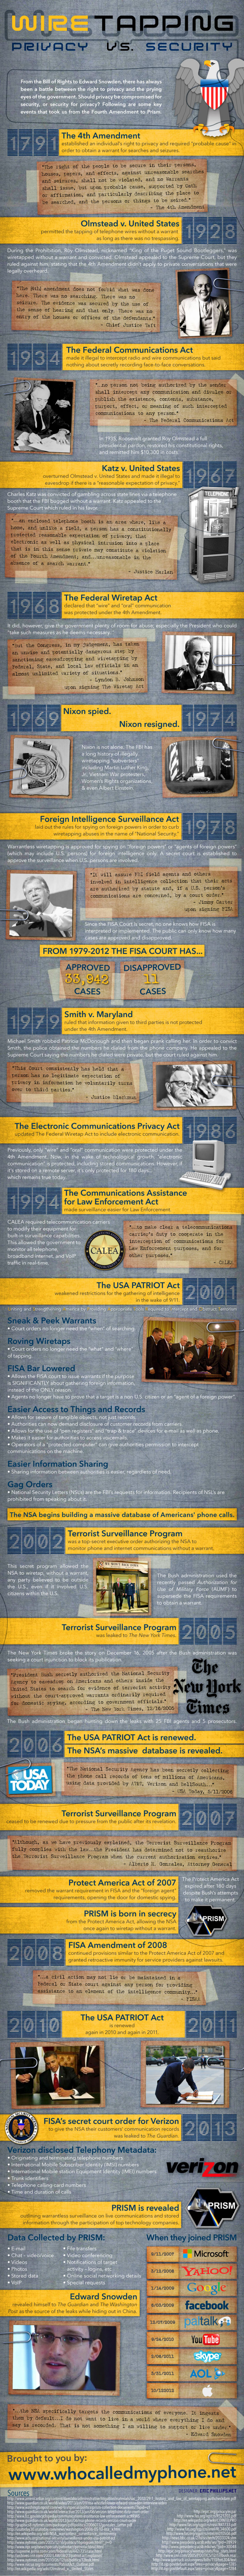 Wire Tapping: Privacy vs. Security Infographic